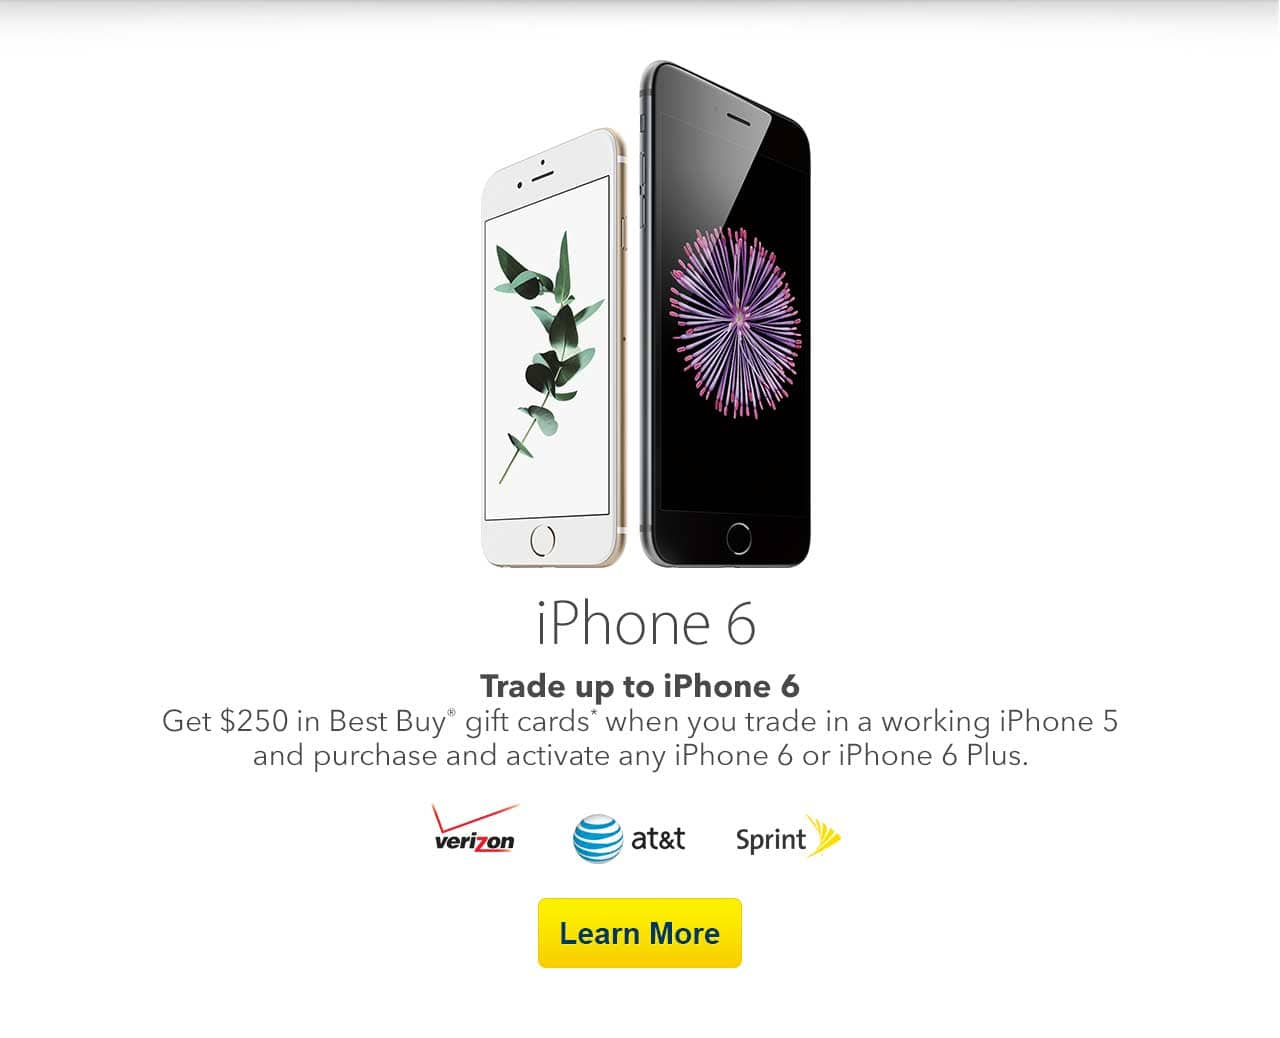 Best Buy: Trade-in working iPhone 5 receive $200 giftcard + $50 giftcard + $25 reward points towards iPhone 6 purchase